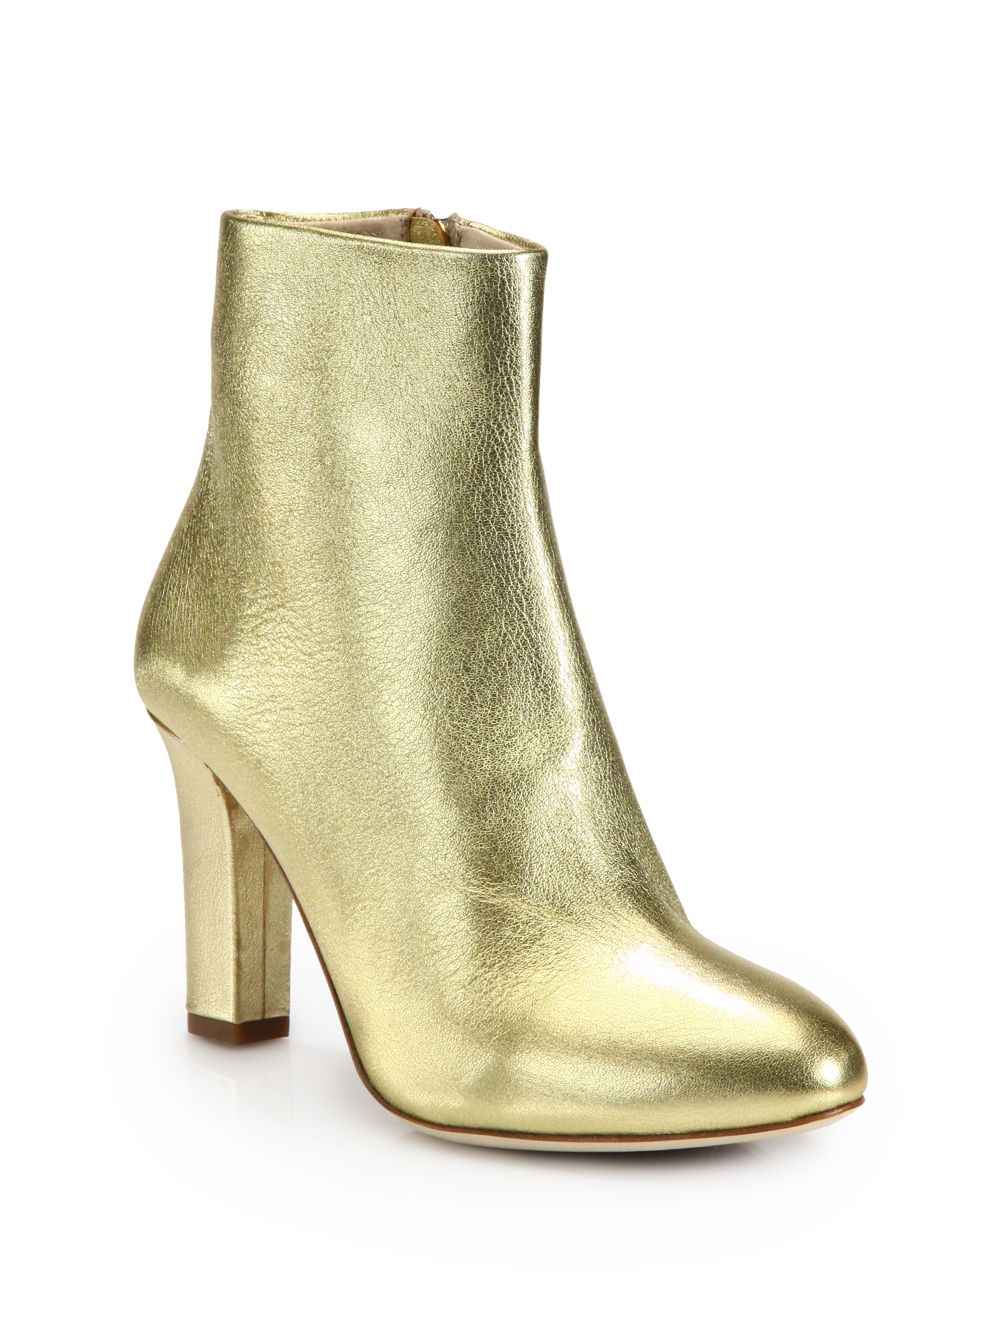 Jerome c. rousseau Metallic Leather Ankle Boots in Metallic | Lyst